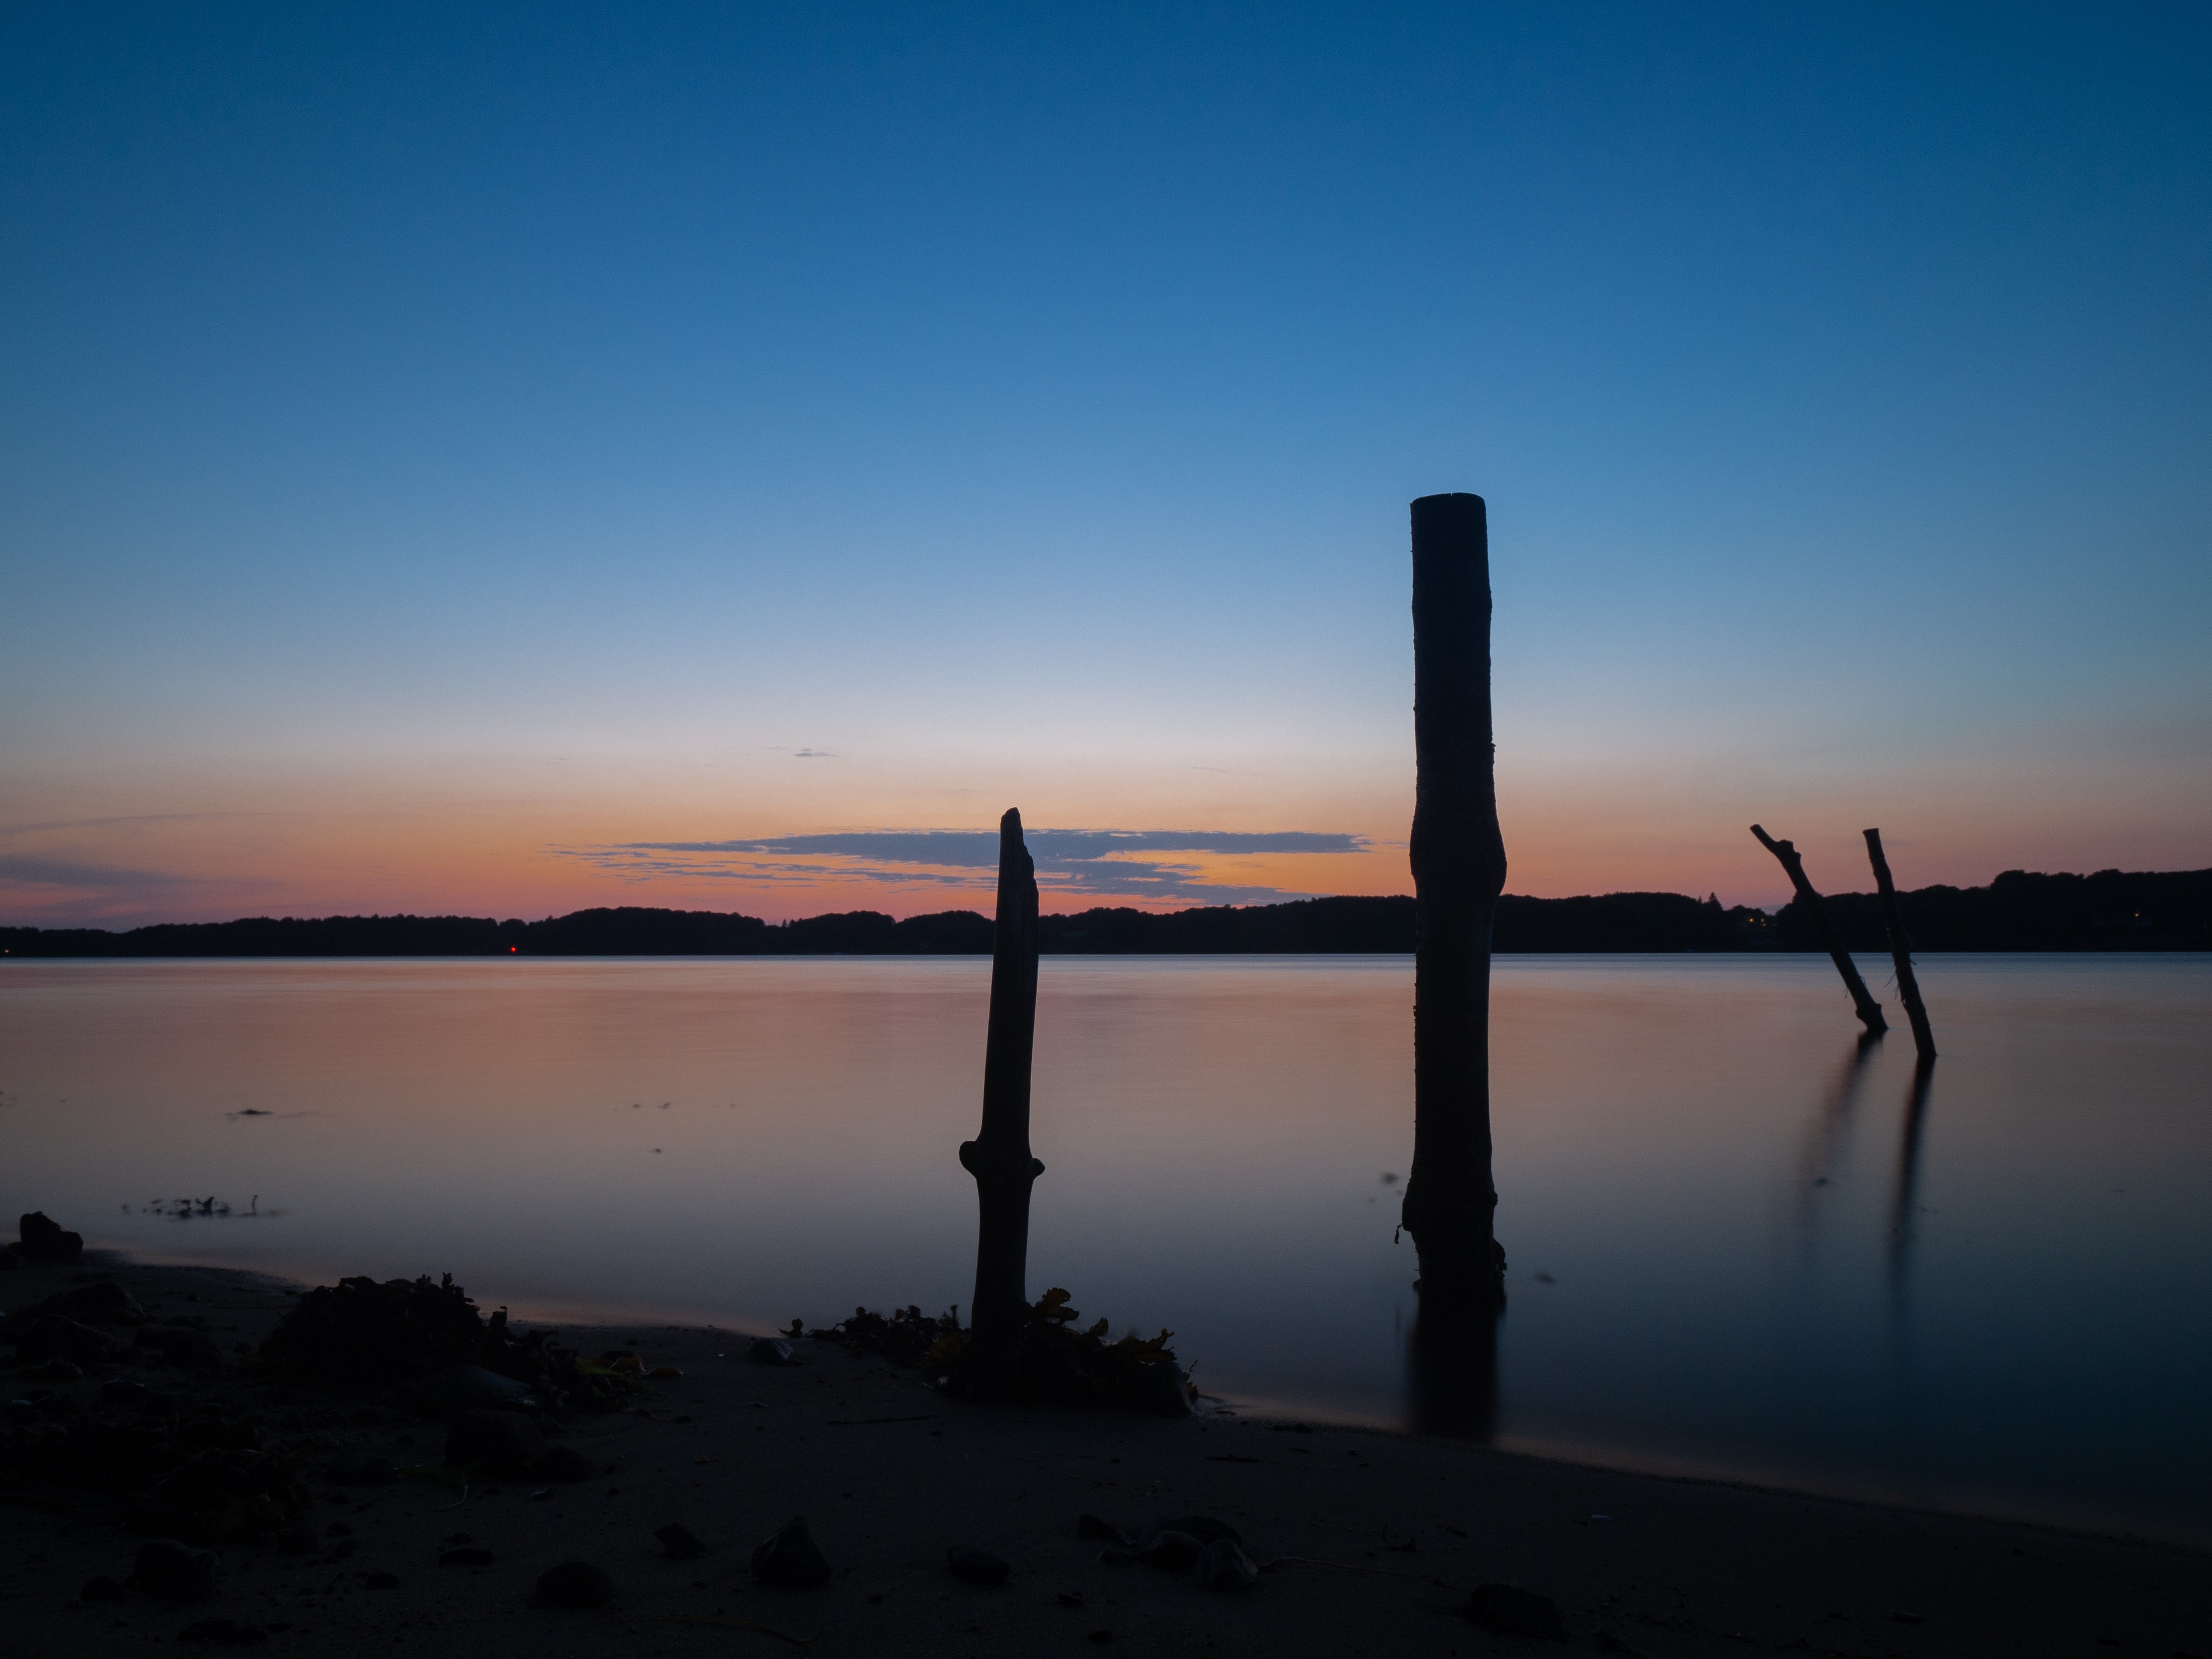 silhouette of wood logs on body of water